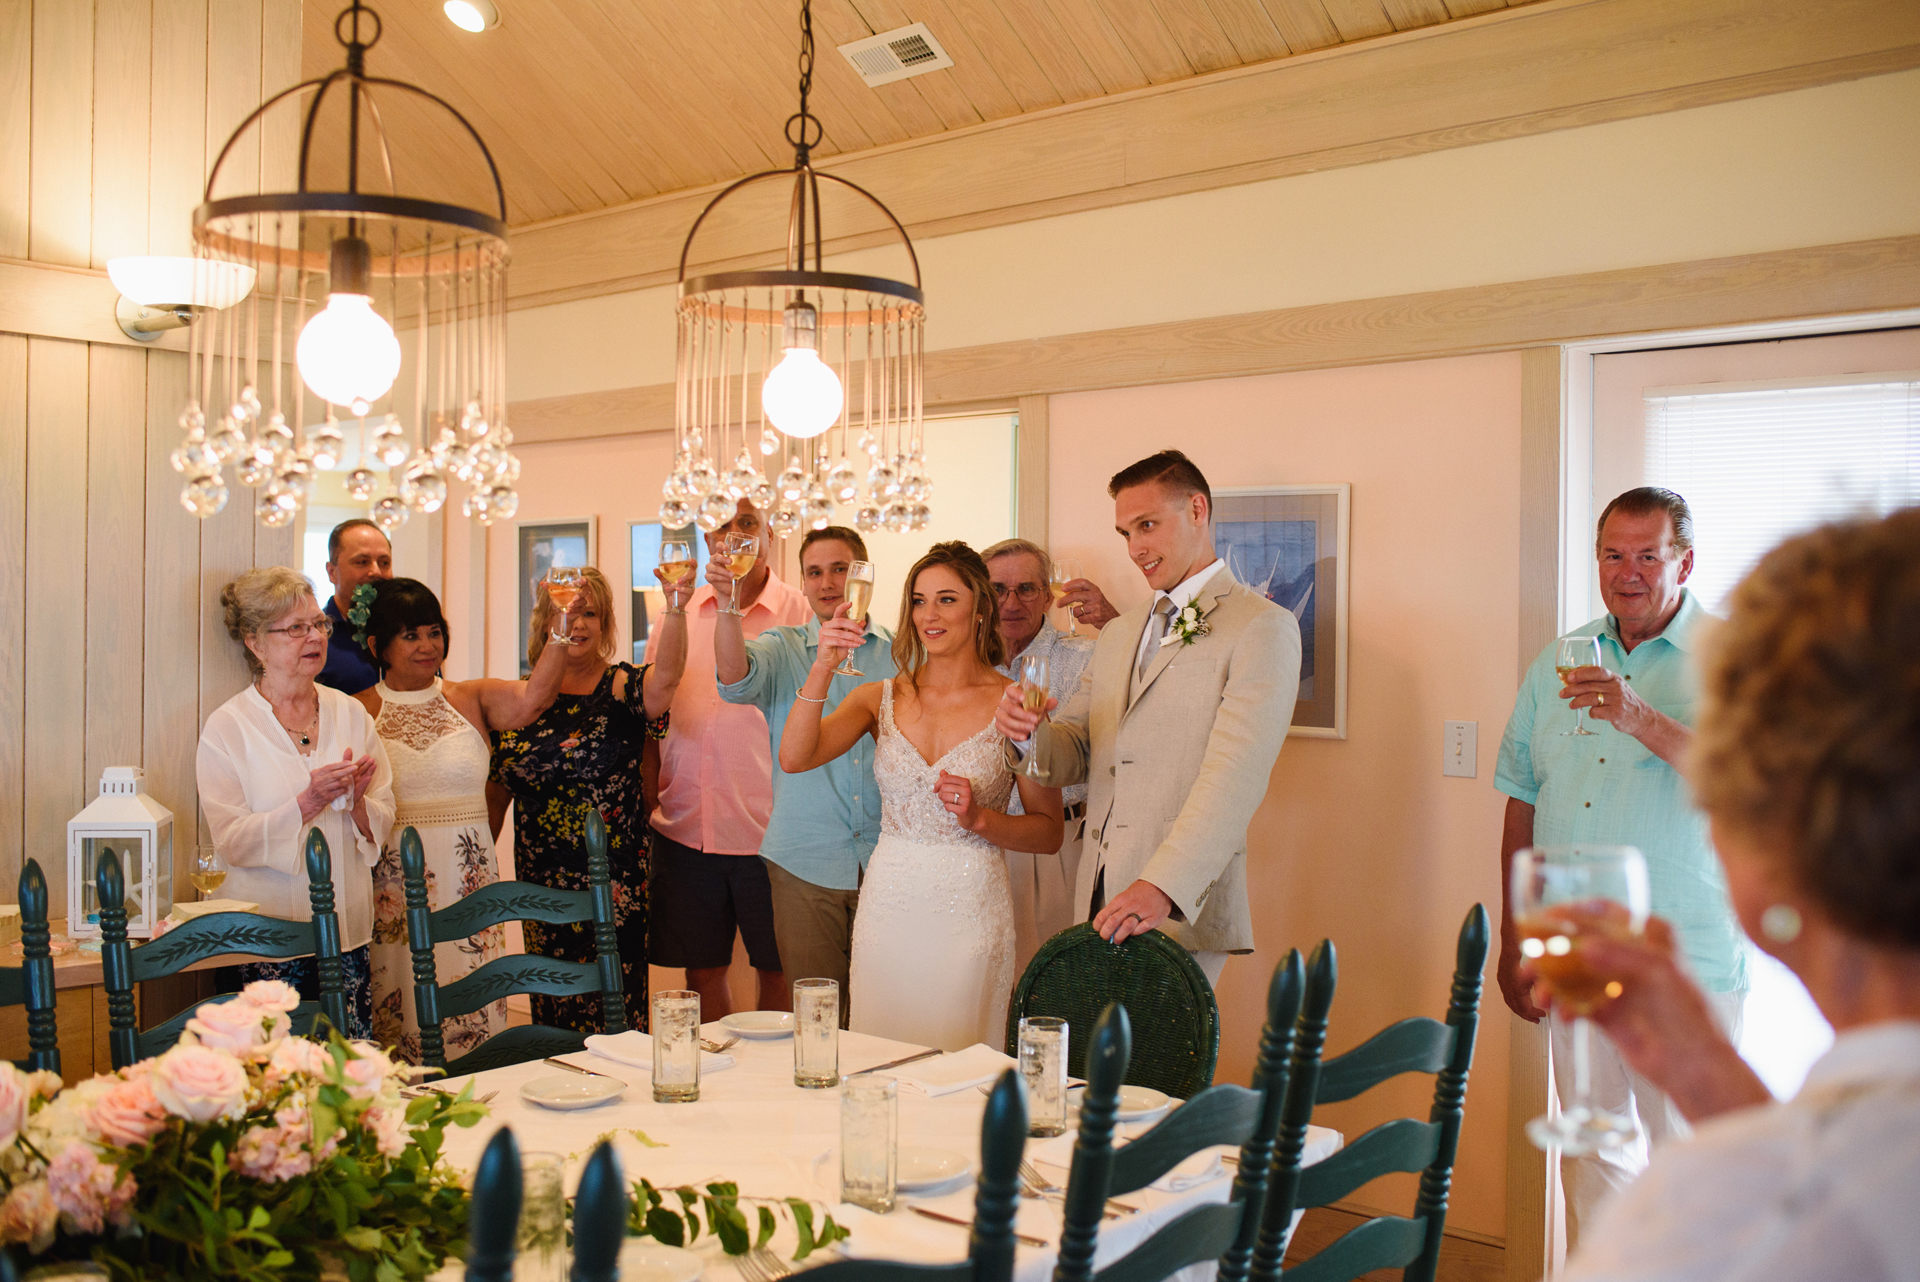 North Carolina Elopement Reception Picture | The bride and groom toast their wedding with a small group of friends and family